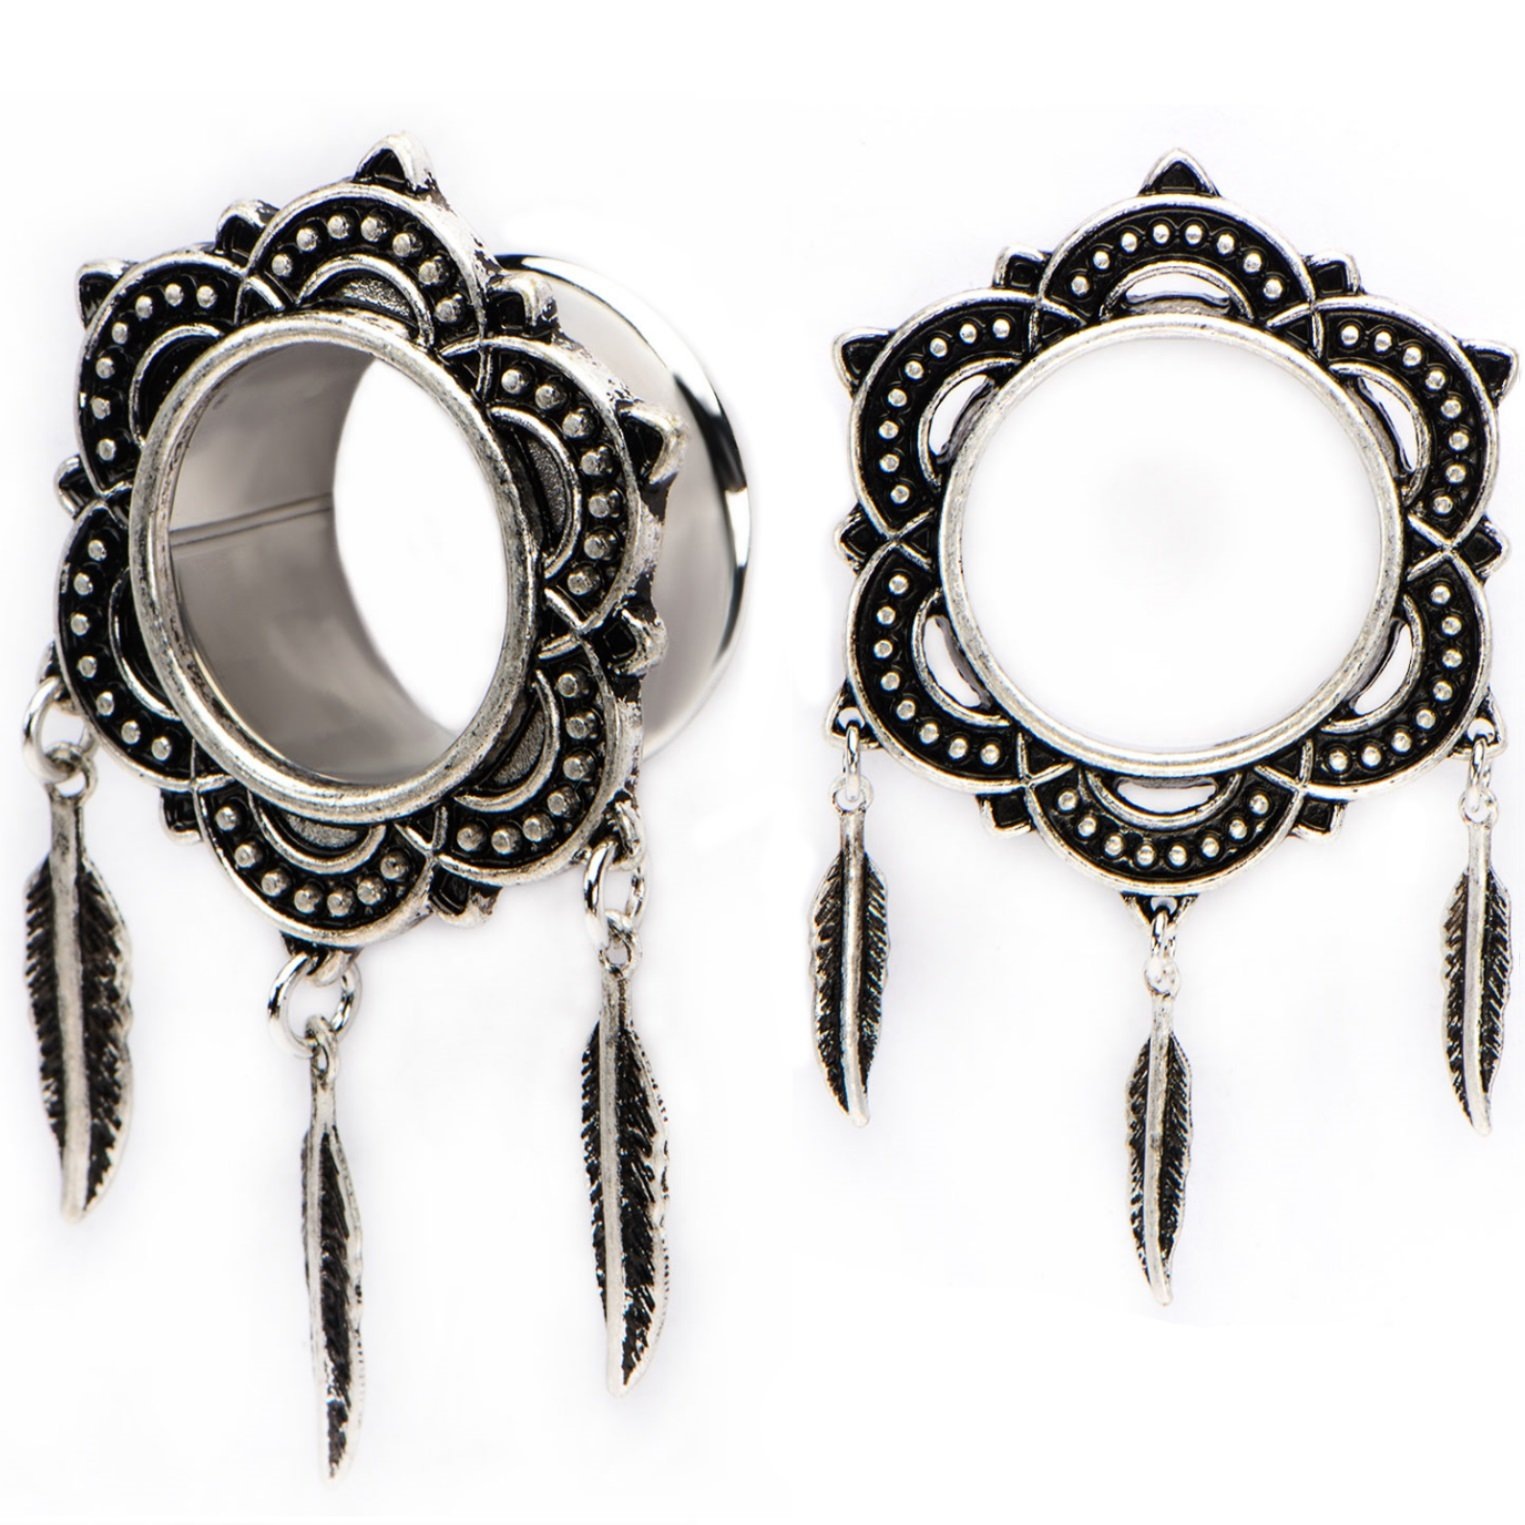 Pair of Tribal Floral Rim Triple Feather Dangle Ear Plugs Tunnels Made with Steel & Brass - 3/4 Inch (19mm)